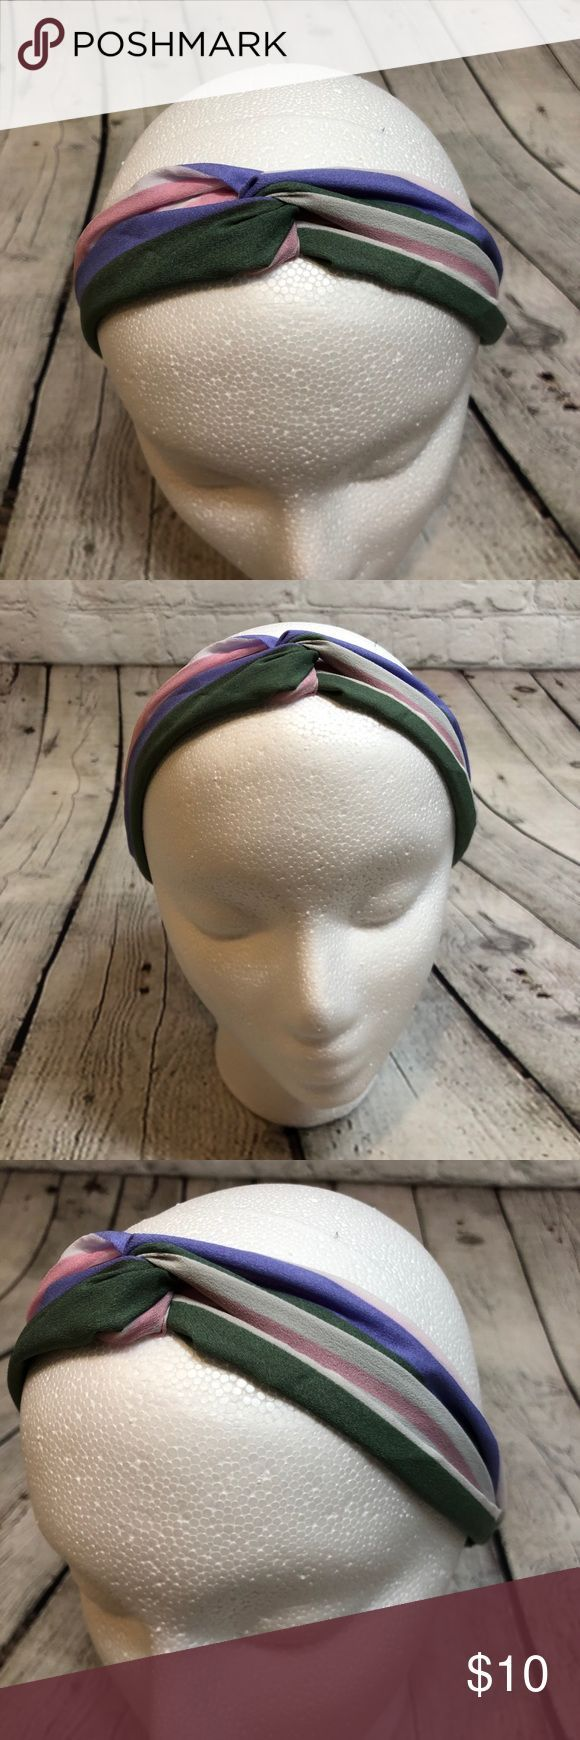 Knotted Boho Headband Stripes Pink Purple Green This knotted headband is super cute. It has elastic inside the fabric and it's stretchy and comforta